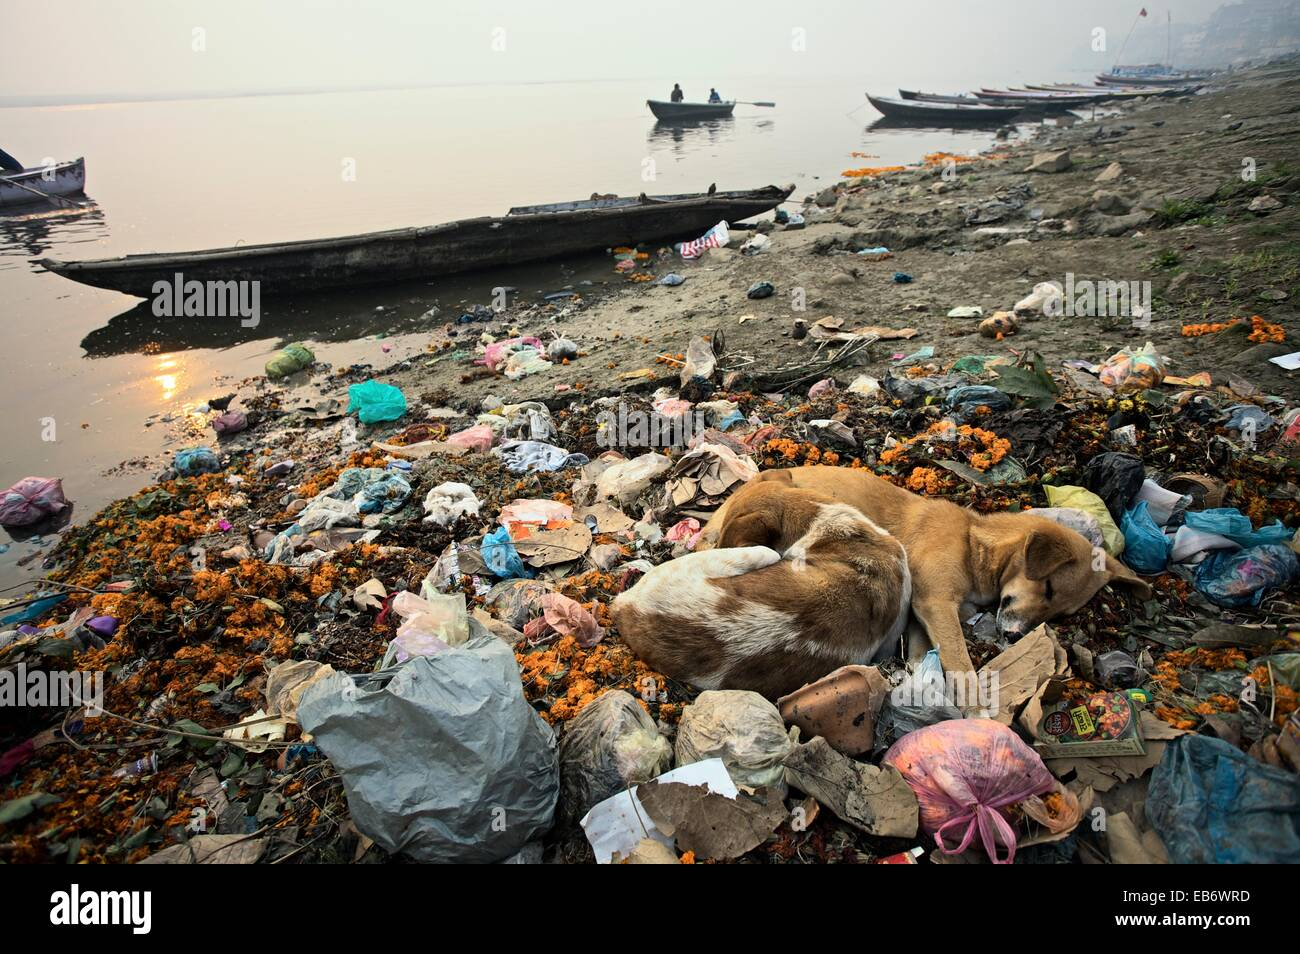 essay on pollution control in india Among india's most pressing environmental problems are land damage, water shortages, and air and water pollution during 1985, deforestation, which, especially in the himalaya watershed areas.